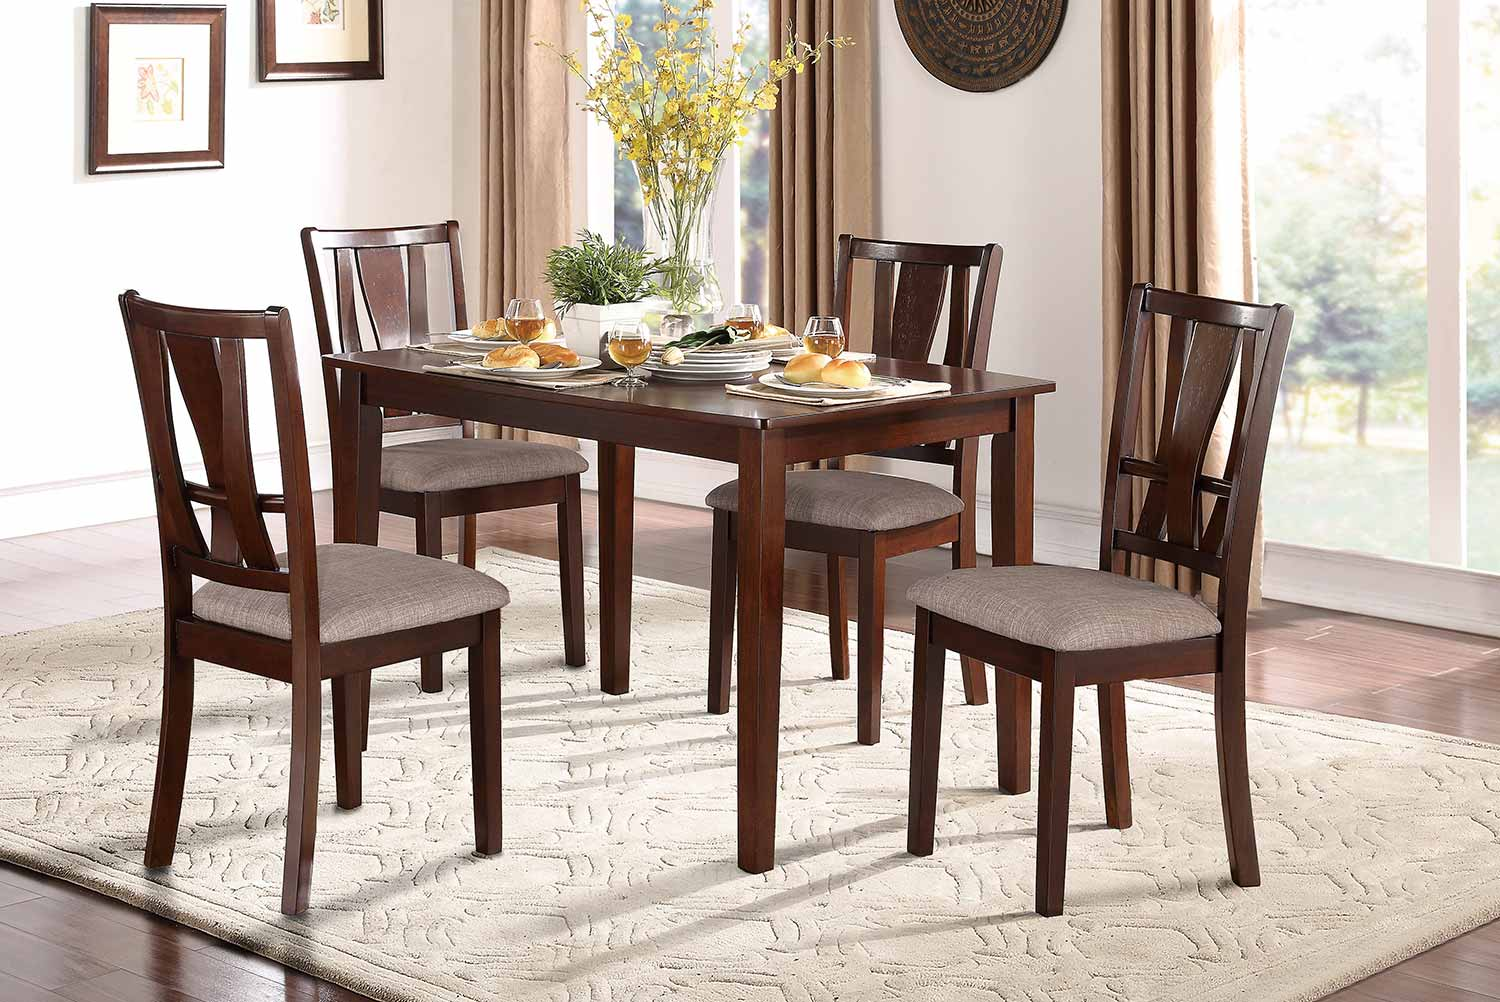 Homelegance Rushville 5-Piece Pack Dinette Set - Warm Cherry